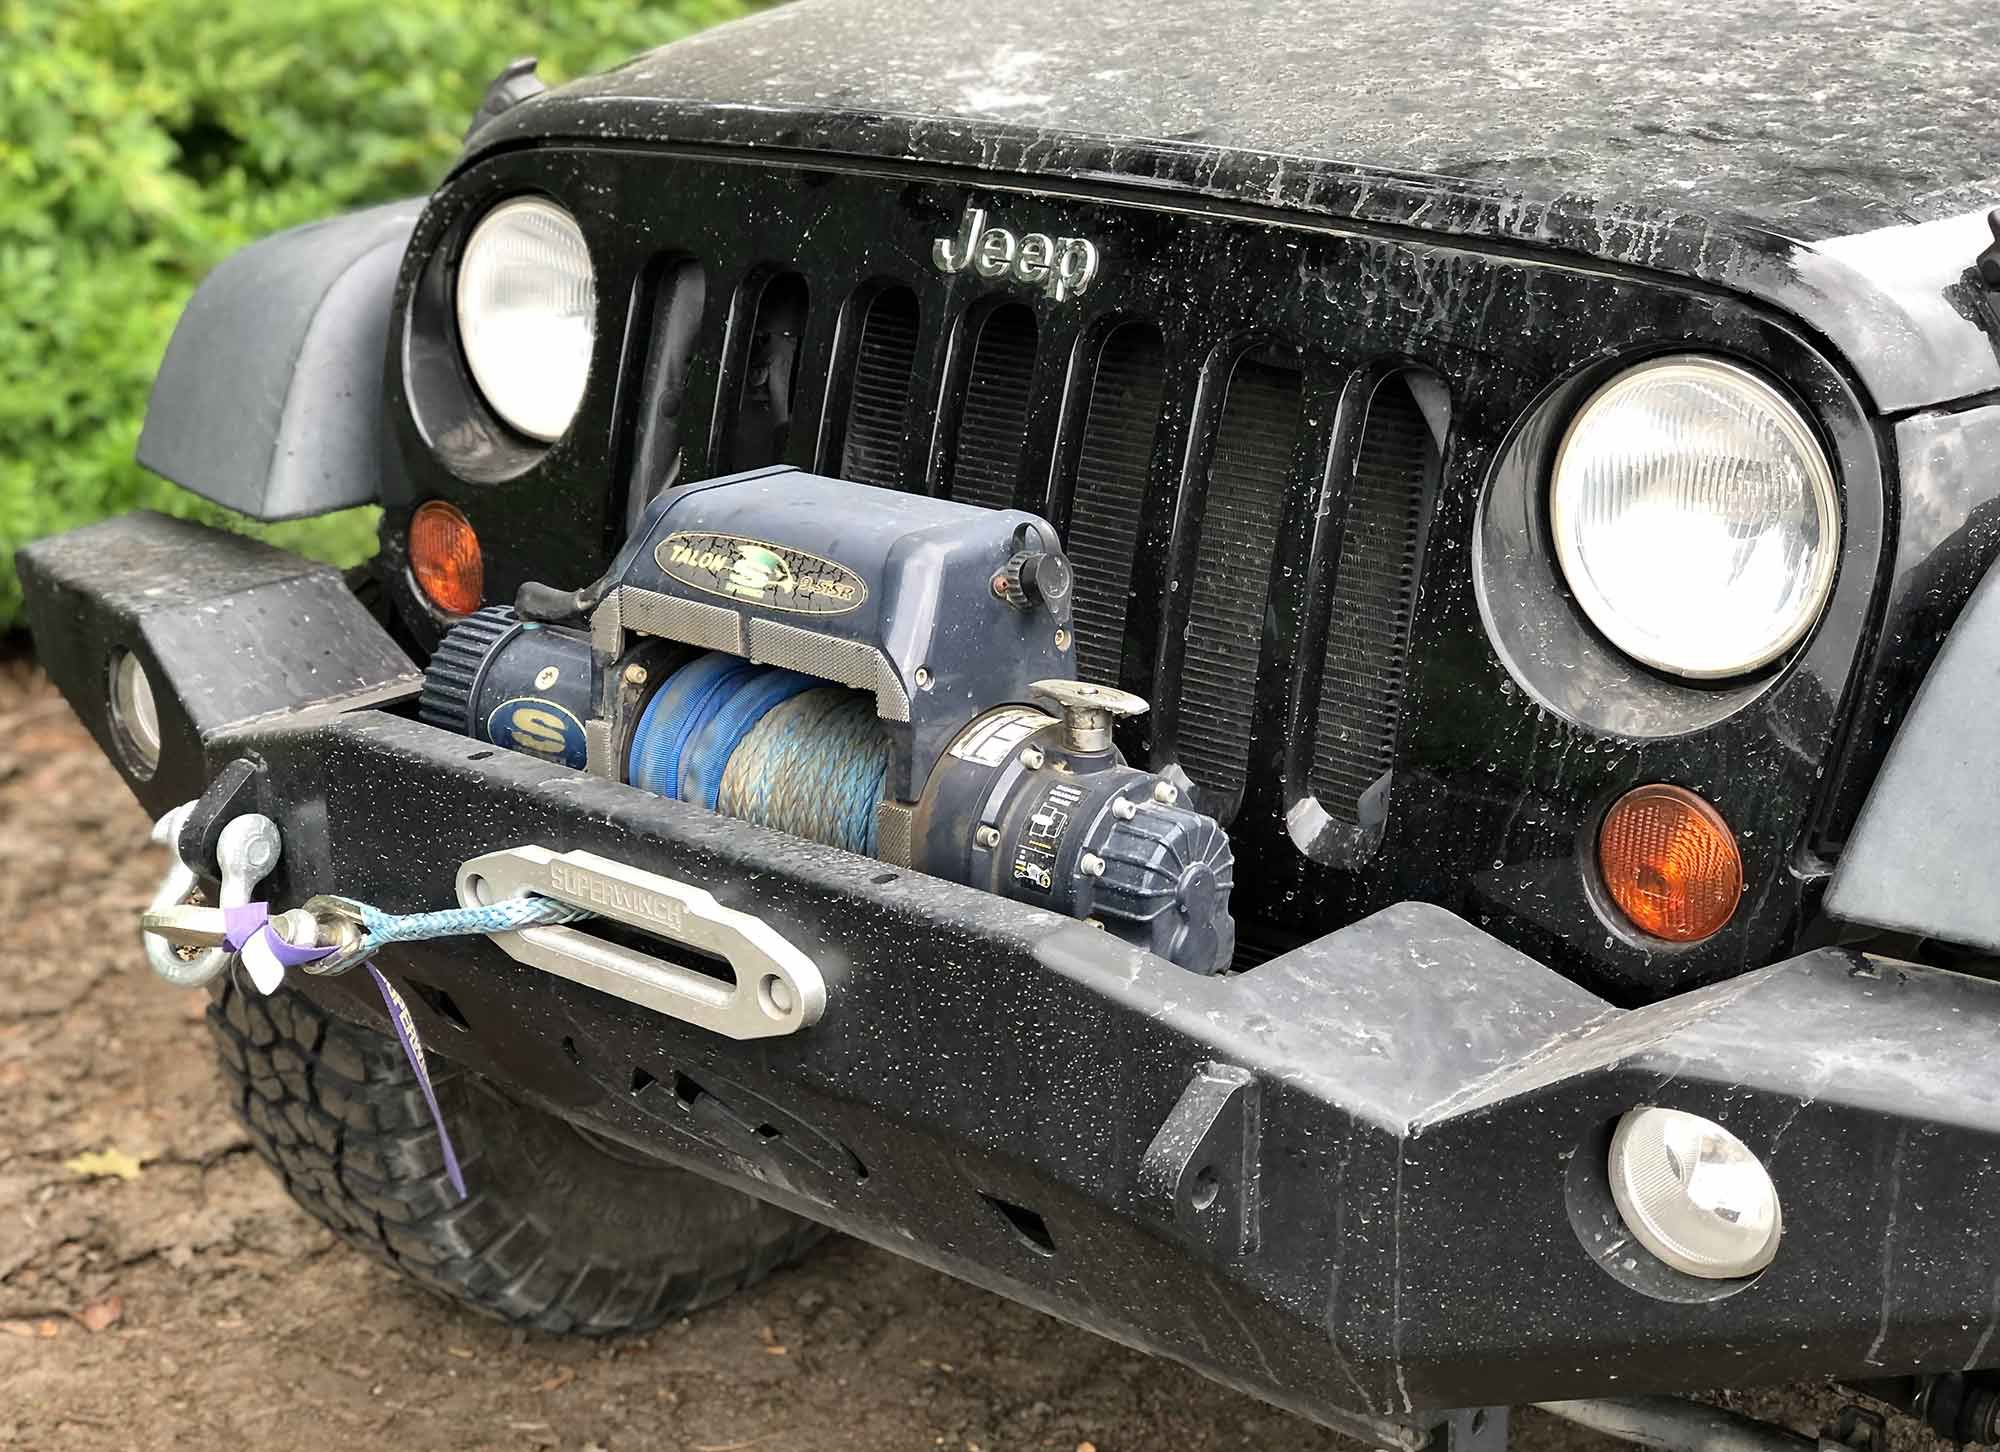 A winch and steel front bumper mean the Jeep's front end is kitted just like many side-by-sides.